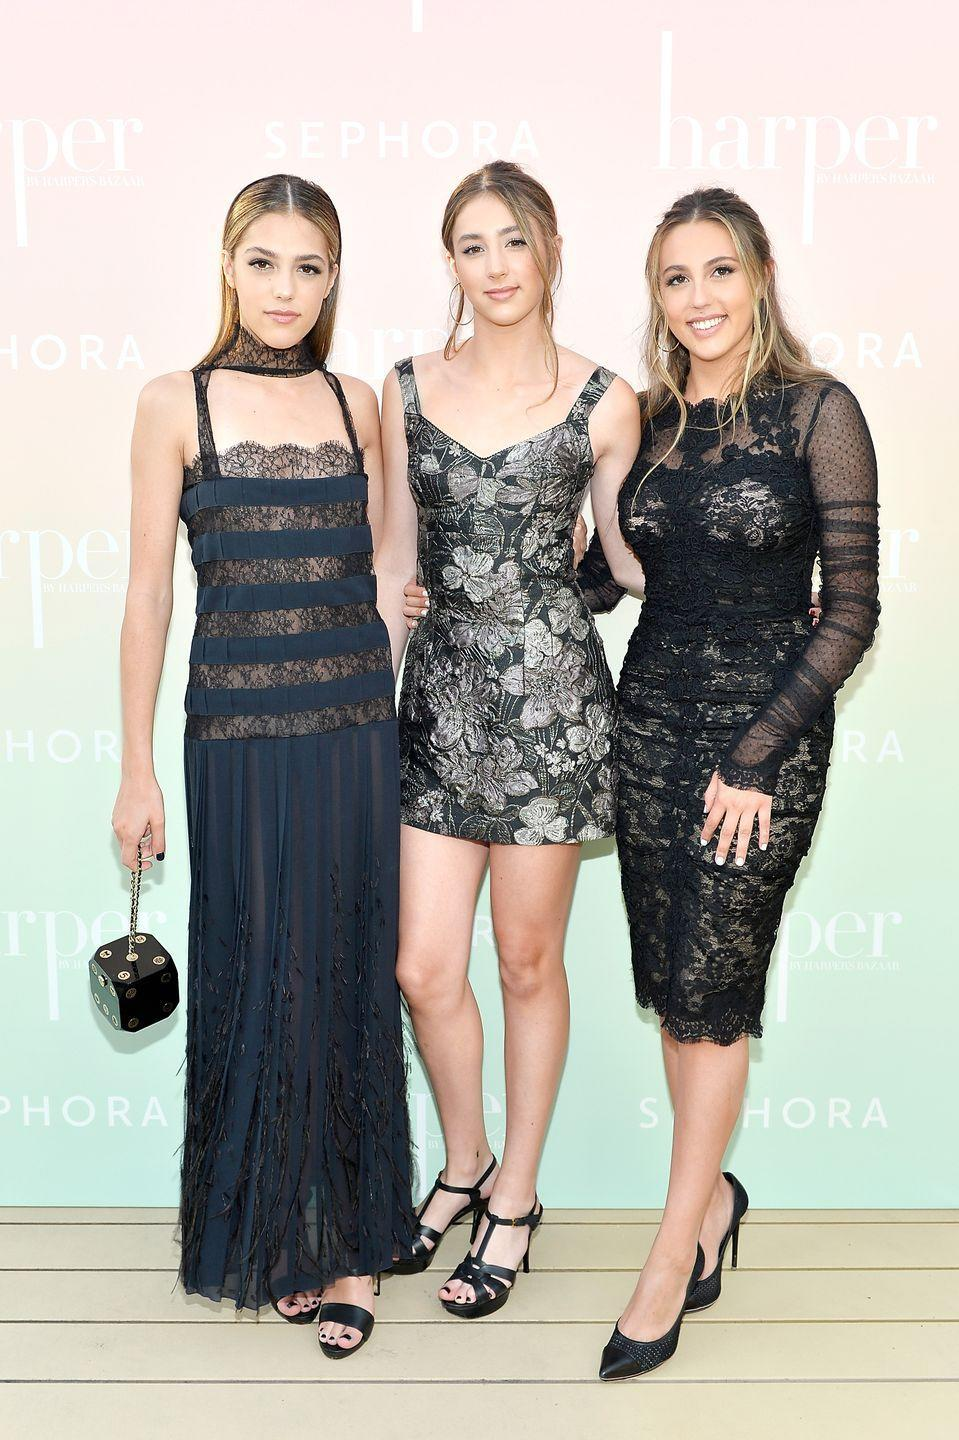 """<p>Sylvester Stallone and Jennifer Flavin's three daughters <a href=""""https://www.townandcountrymag.com/society/a22561070/modern-swan-2018-sistine-stallone/"""" rel=""""nofollow noopener"""" target=""""_blank"""" data-ylk=""""slk:Sistine"""" class=""""link rapid-noclick-resp"""">Sistine</a>, 20, Scarlet, 16, and Sophia, 22, have made names for themselves after they were presented with the 2017 Miss Golden Globe honor— as a trio. </p>"""